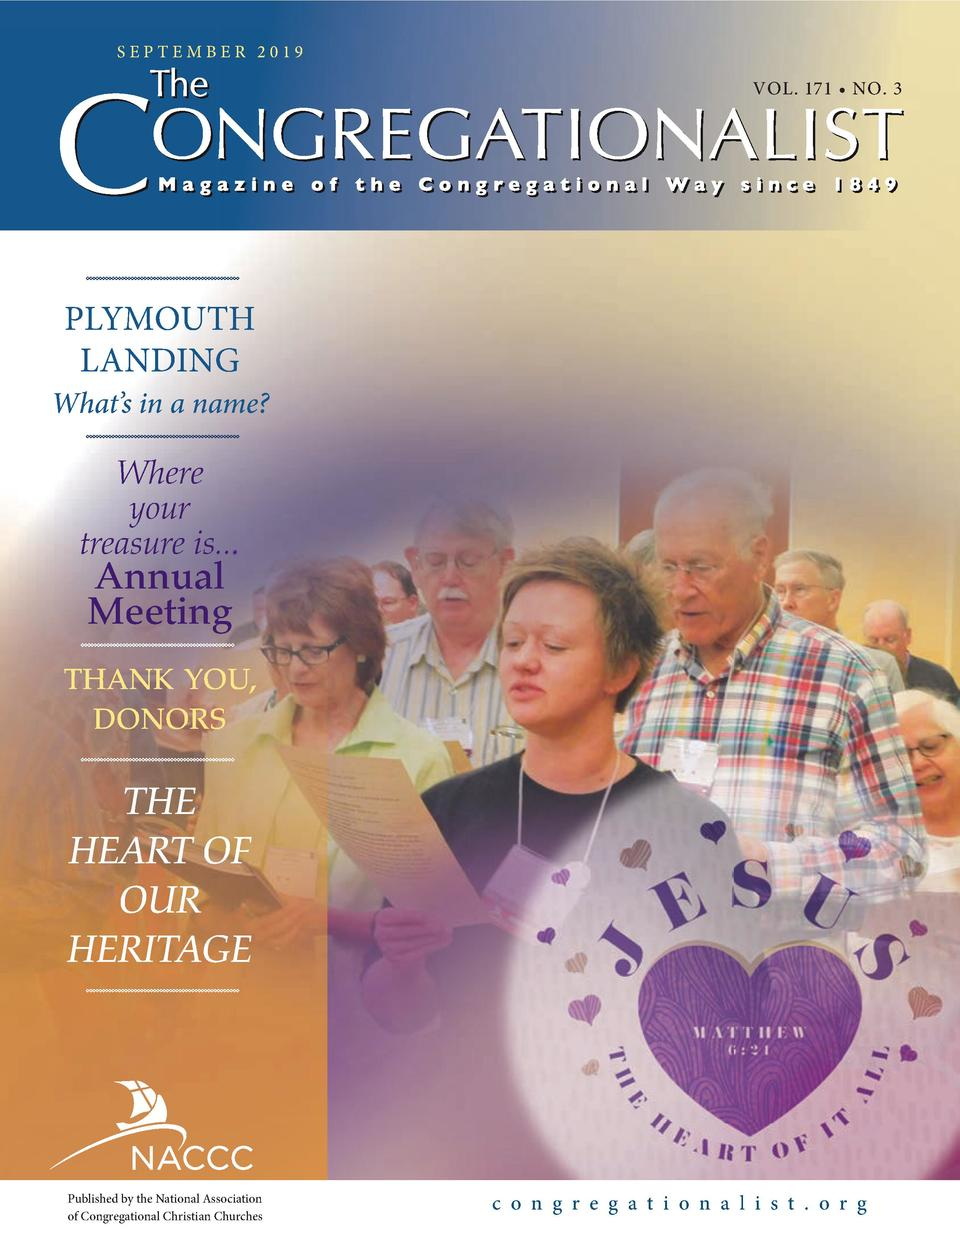 SEPTEMBER 2019  VOL. 171     NO. 3  PLYMOUTH LANDING  What   s in a name   Where your treasure is...  Annual Meeting  THAN...